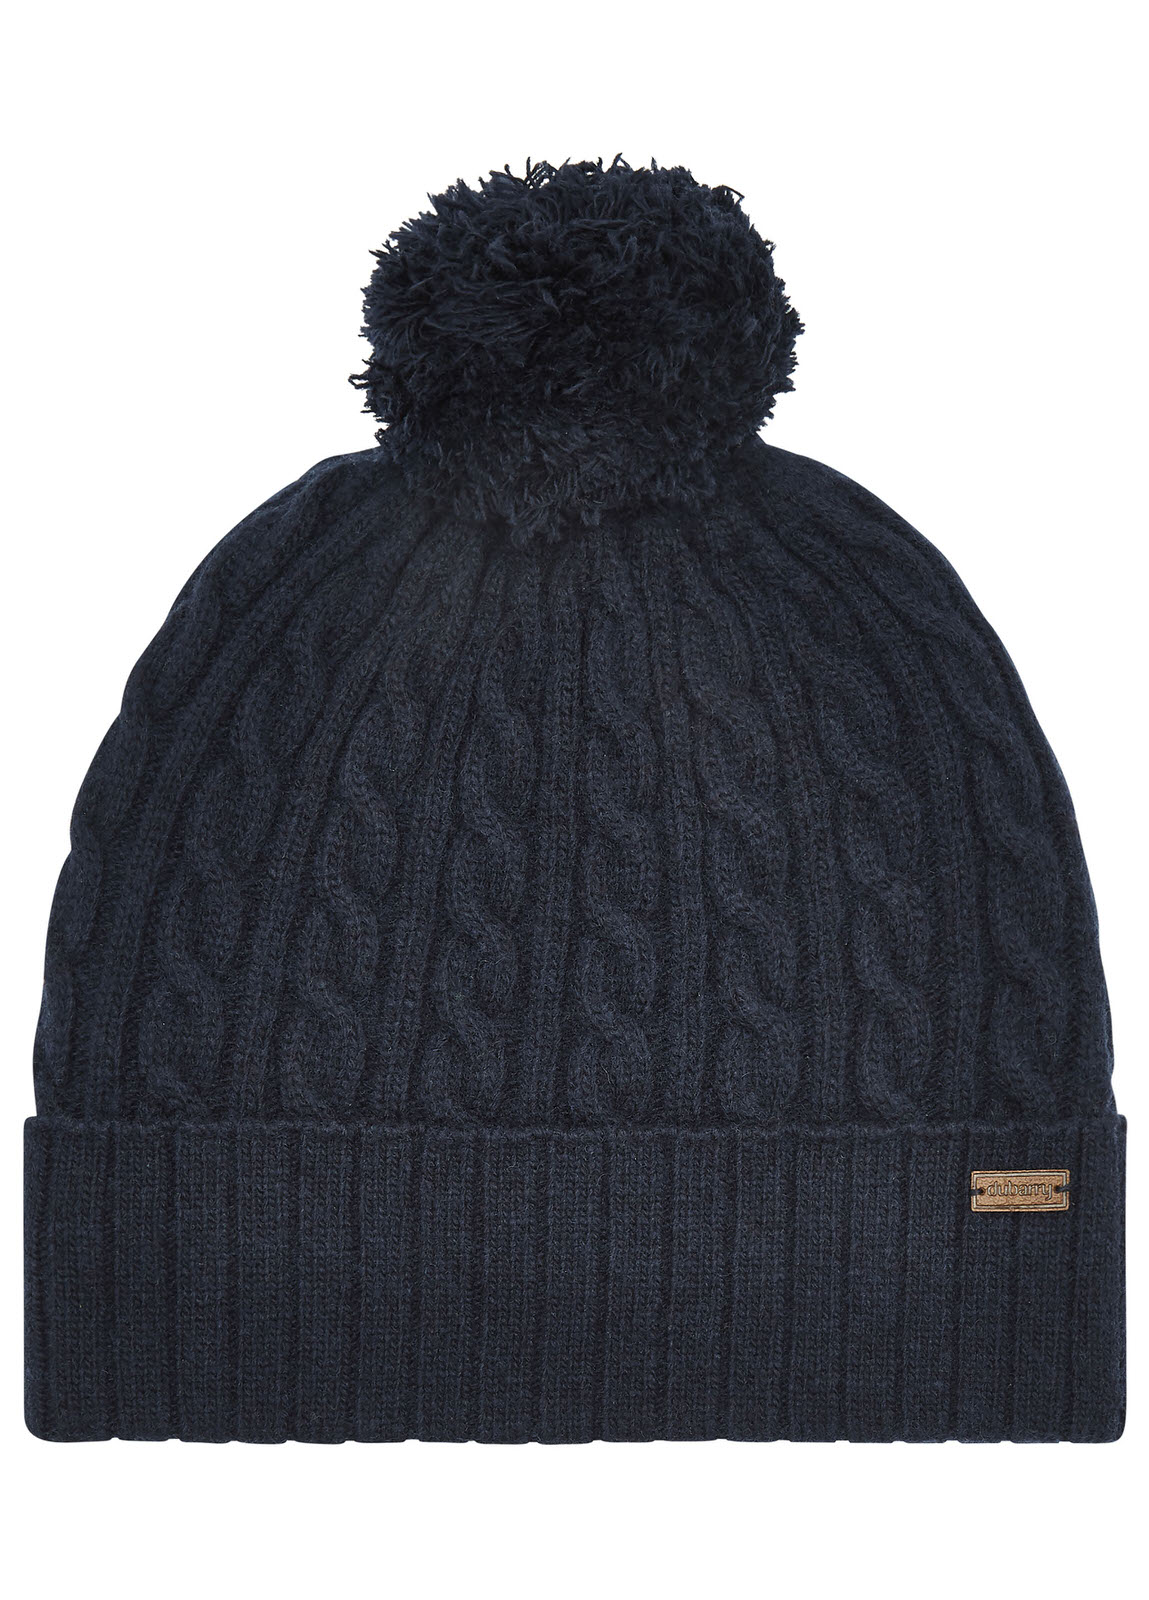 Schull_Knitted_Hat_Navy_Image_1